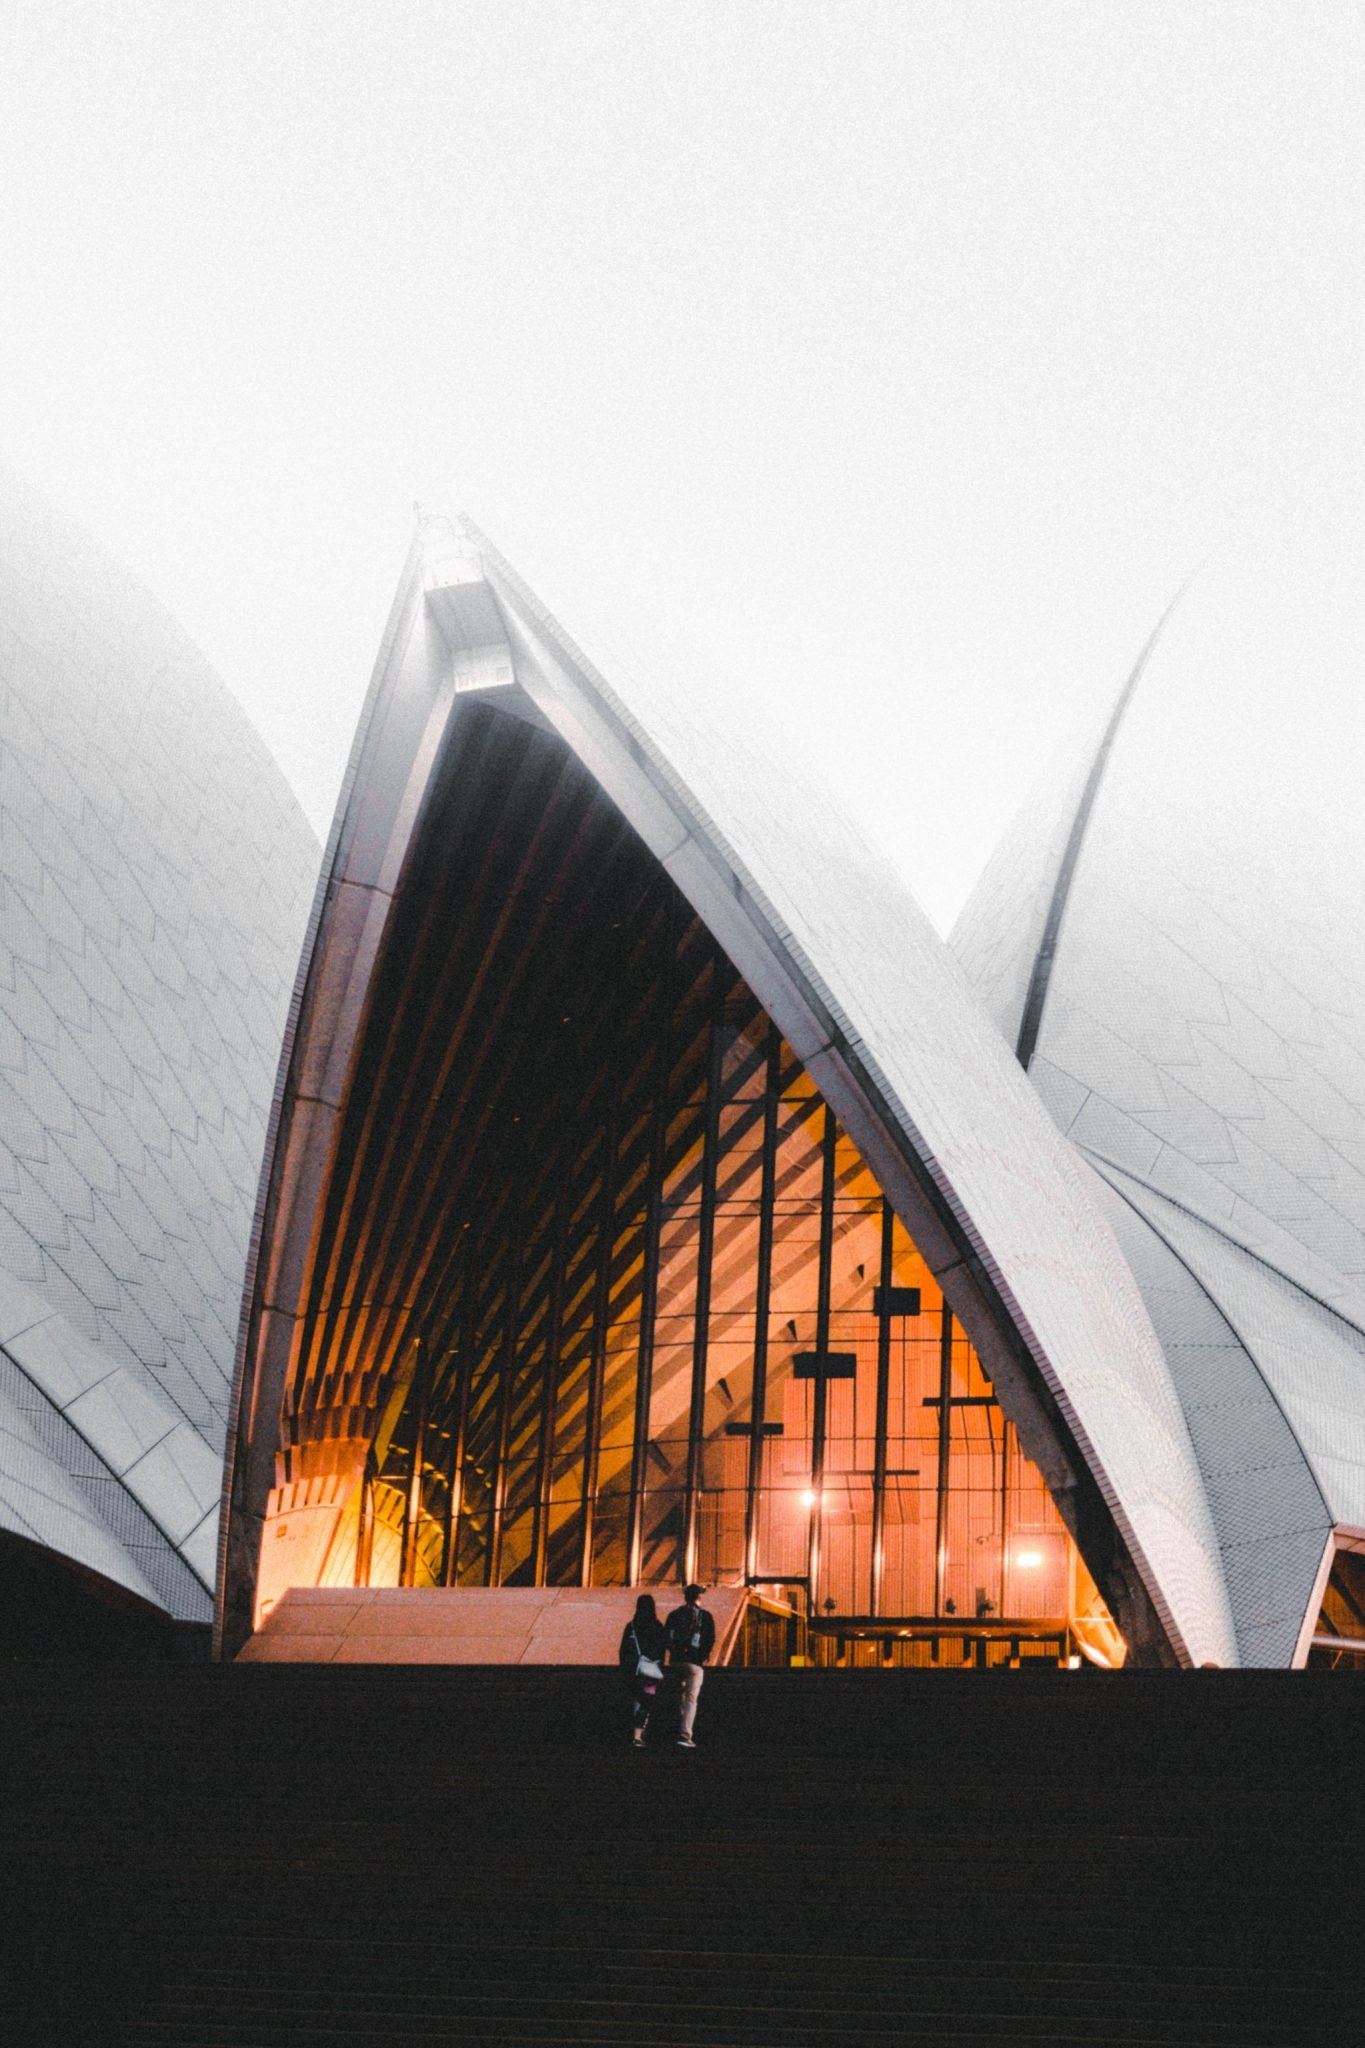 Sydney Opera House. A must see when in Sydney